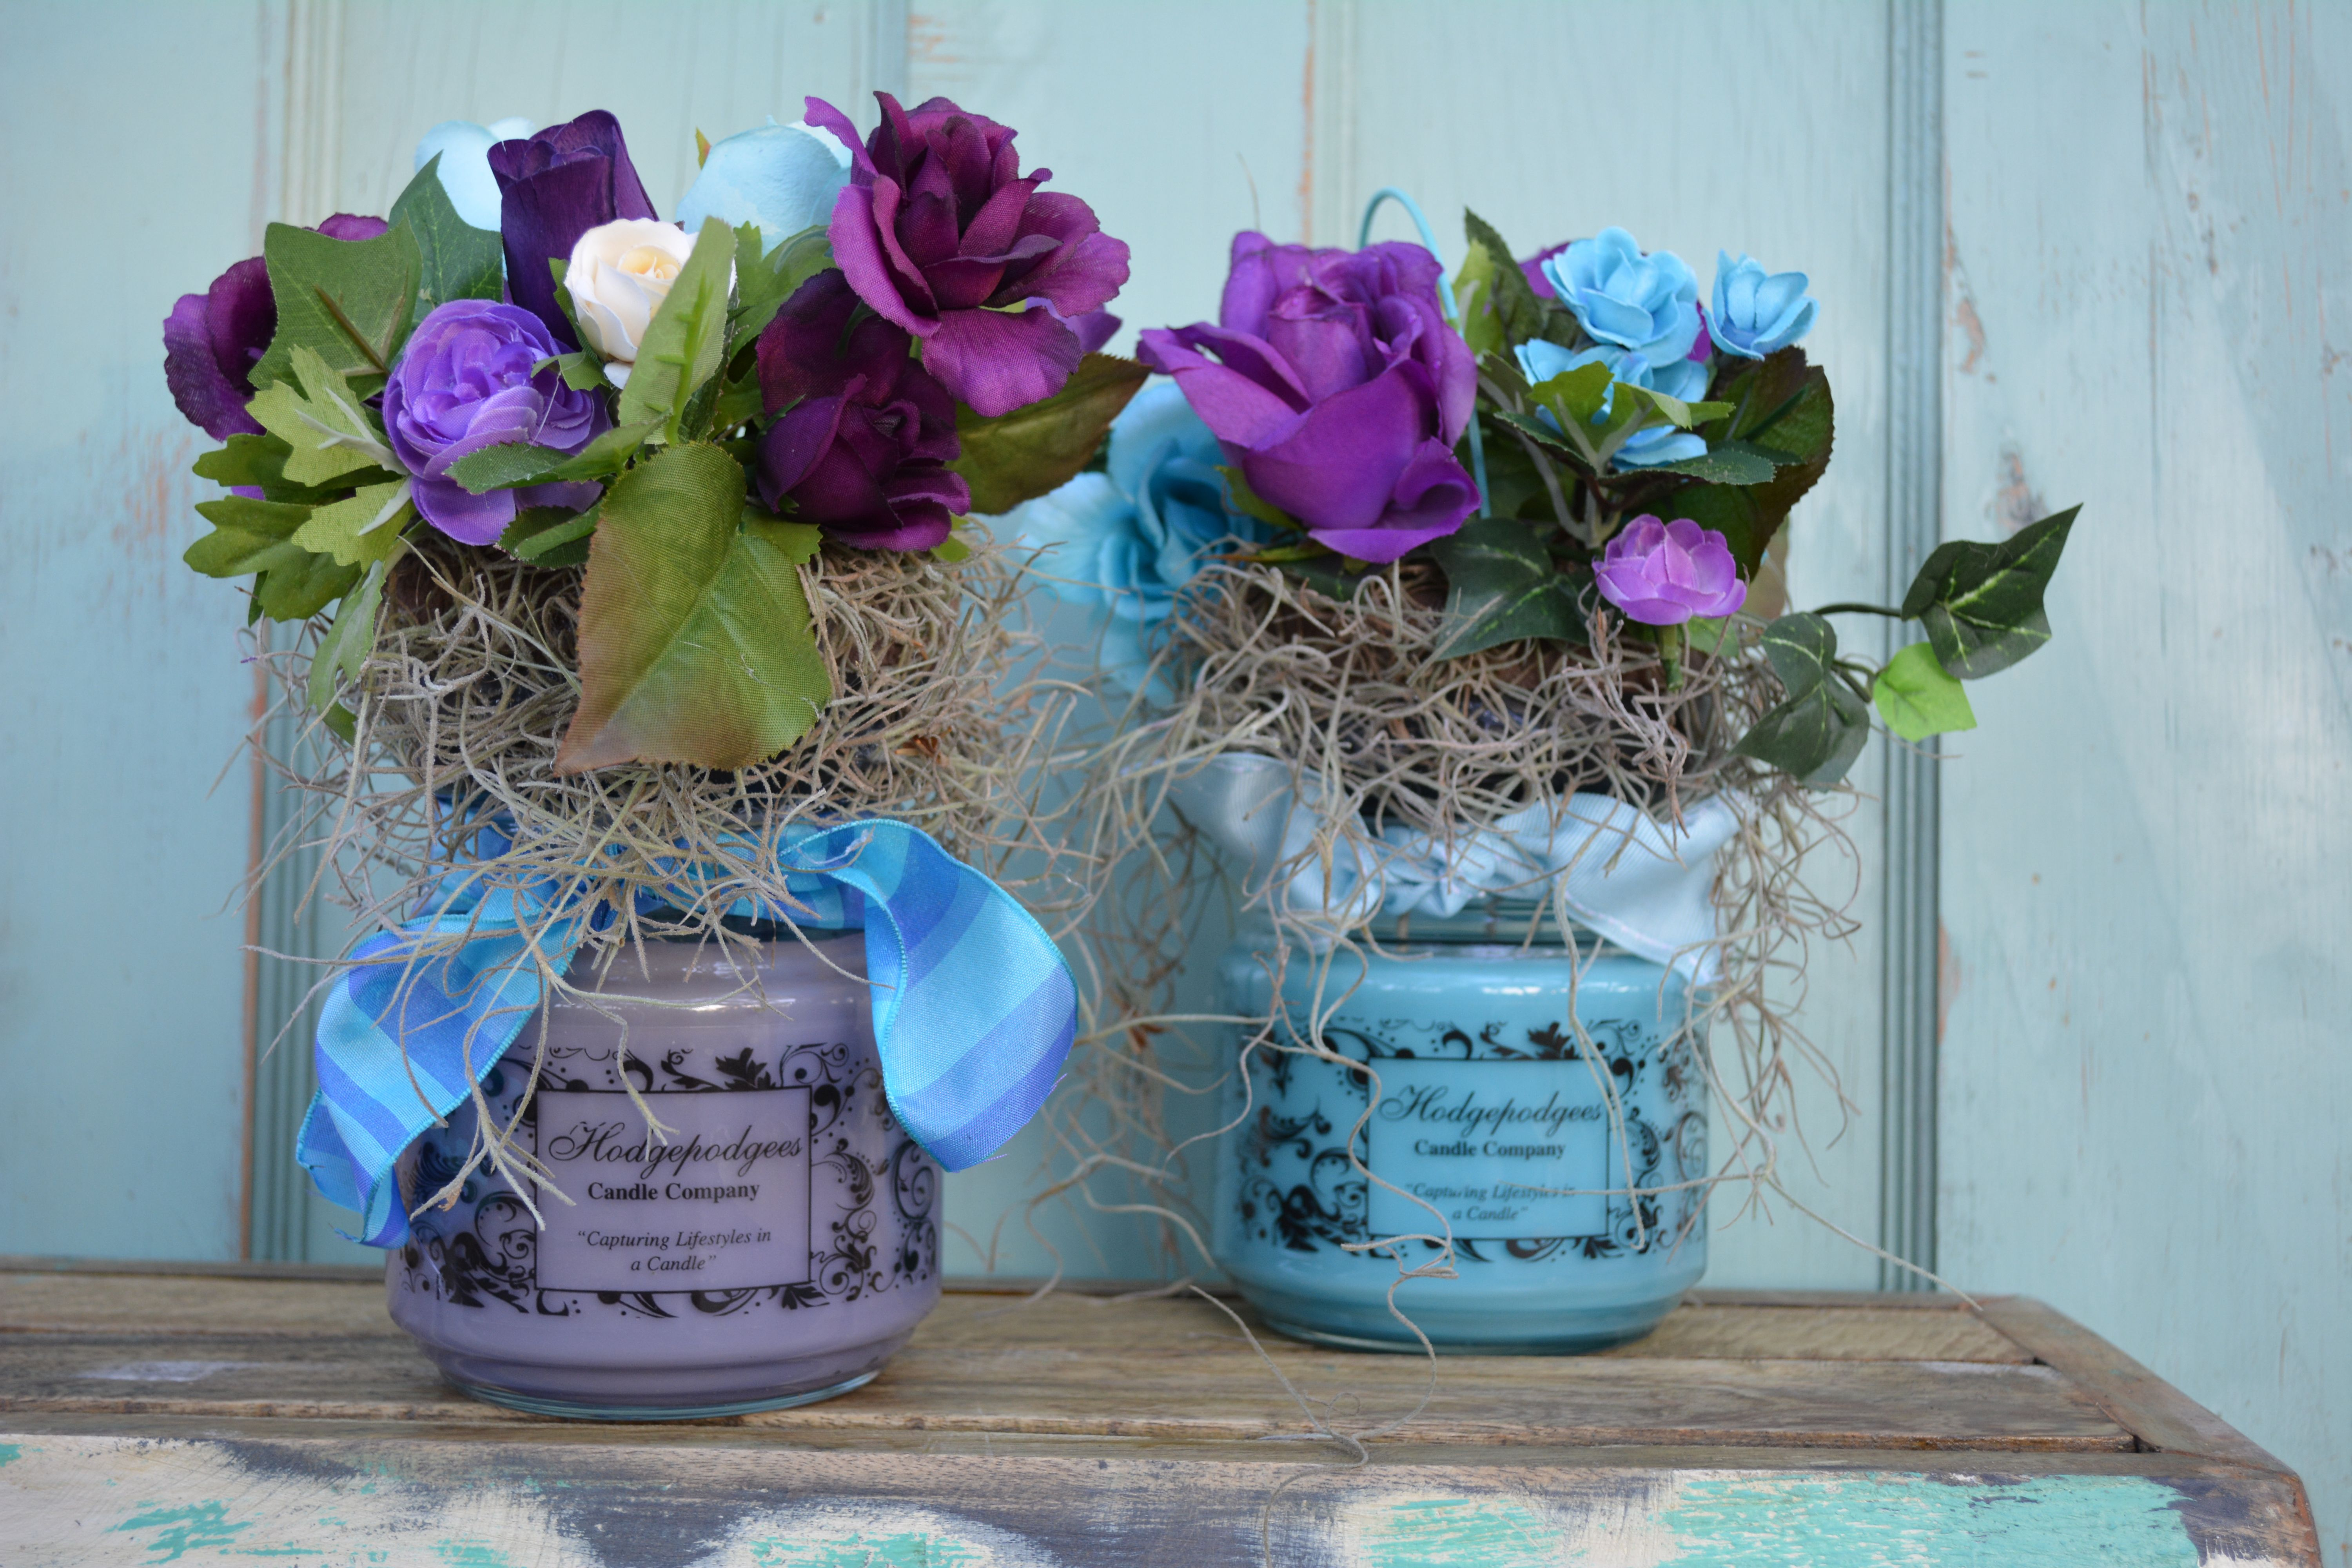 Candle with flowers- perfect for weddings and gifts !!!